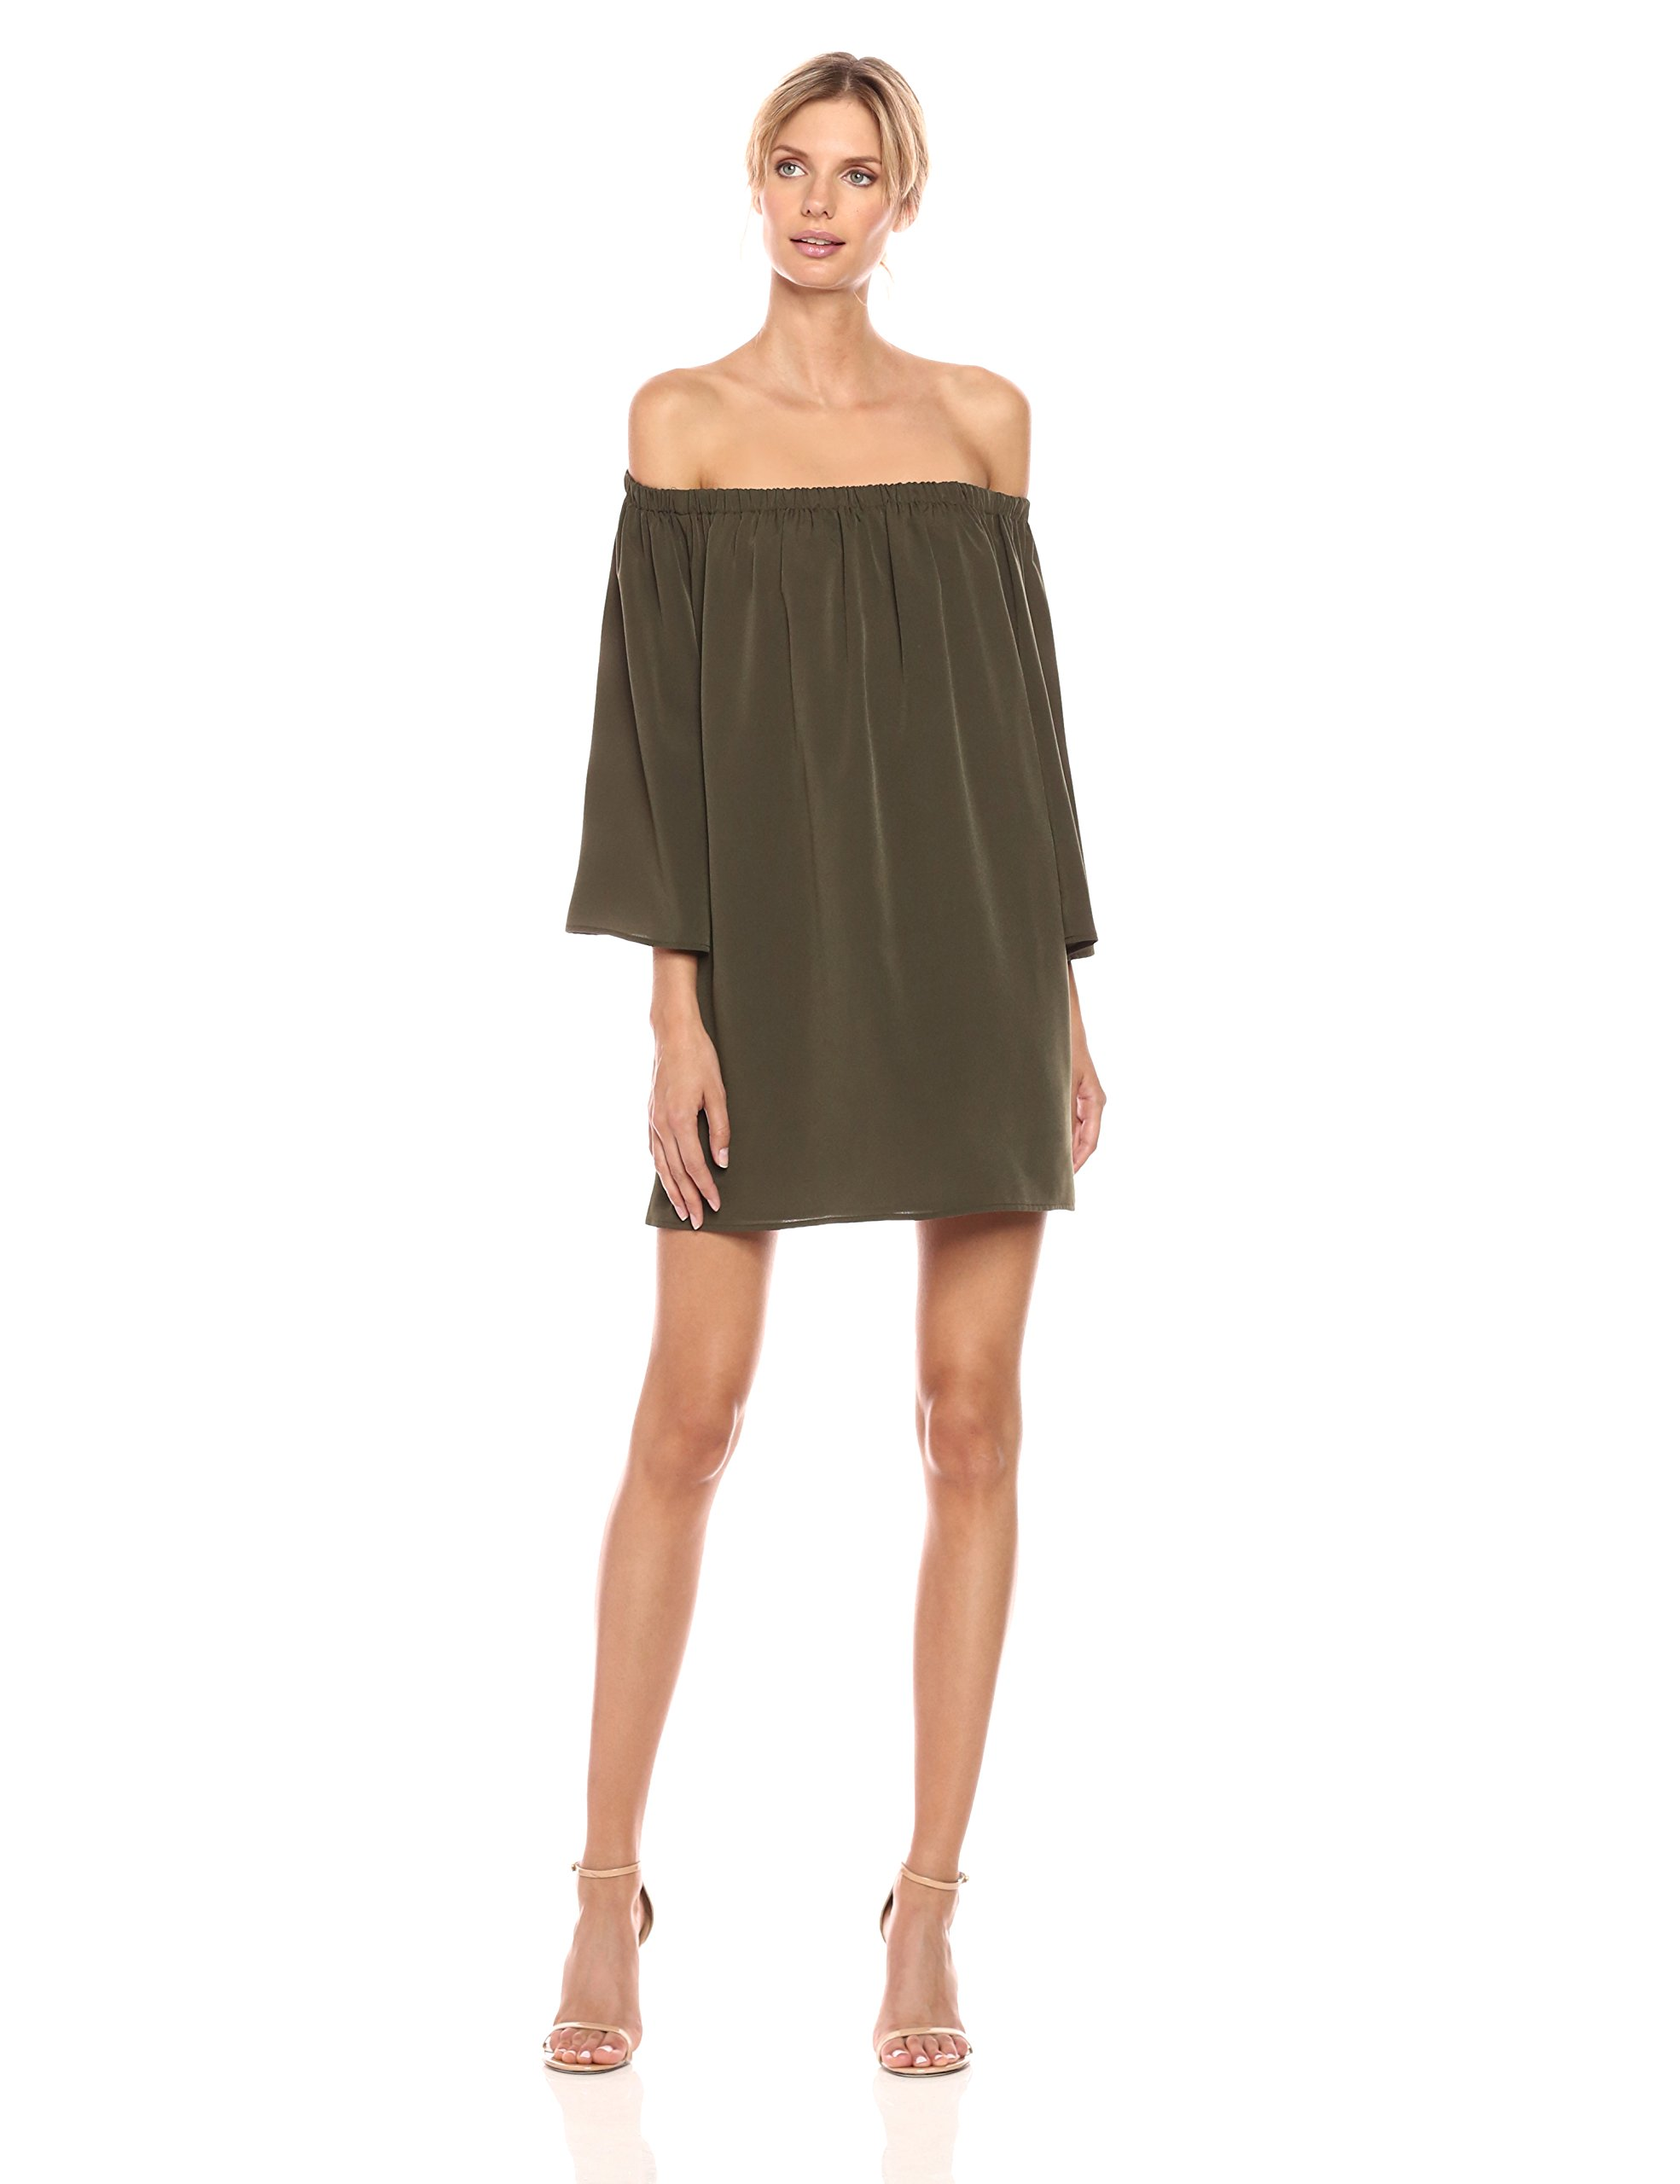 French Connection Women's Summer Crepe Light Ls OTS Dress, Woodland Green, XS